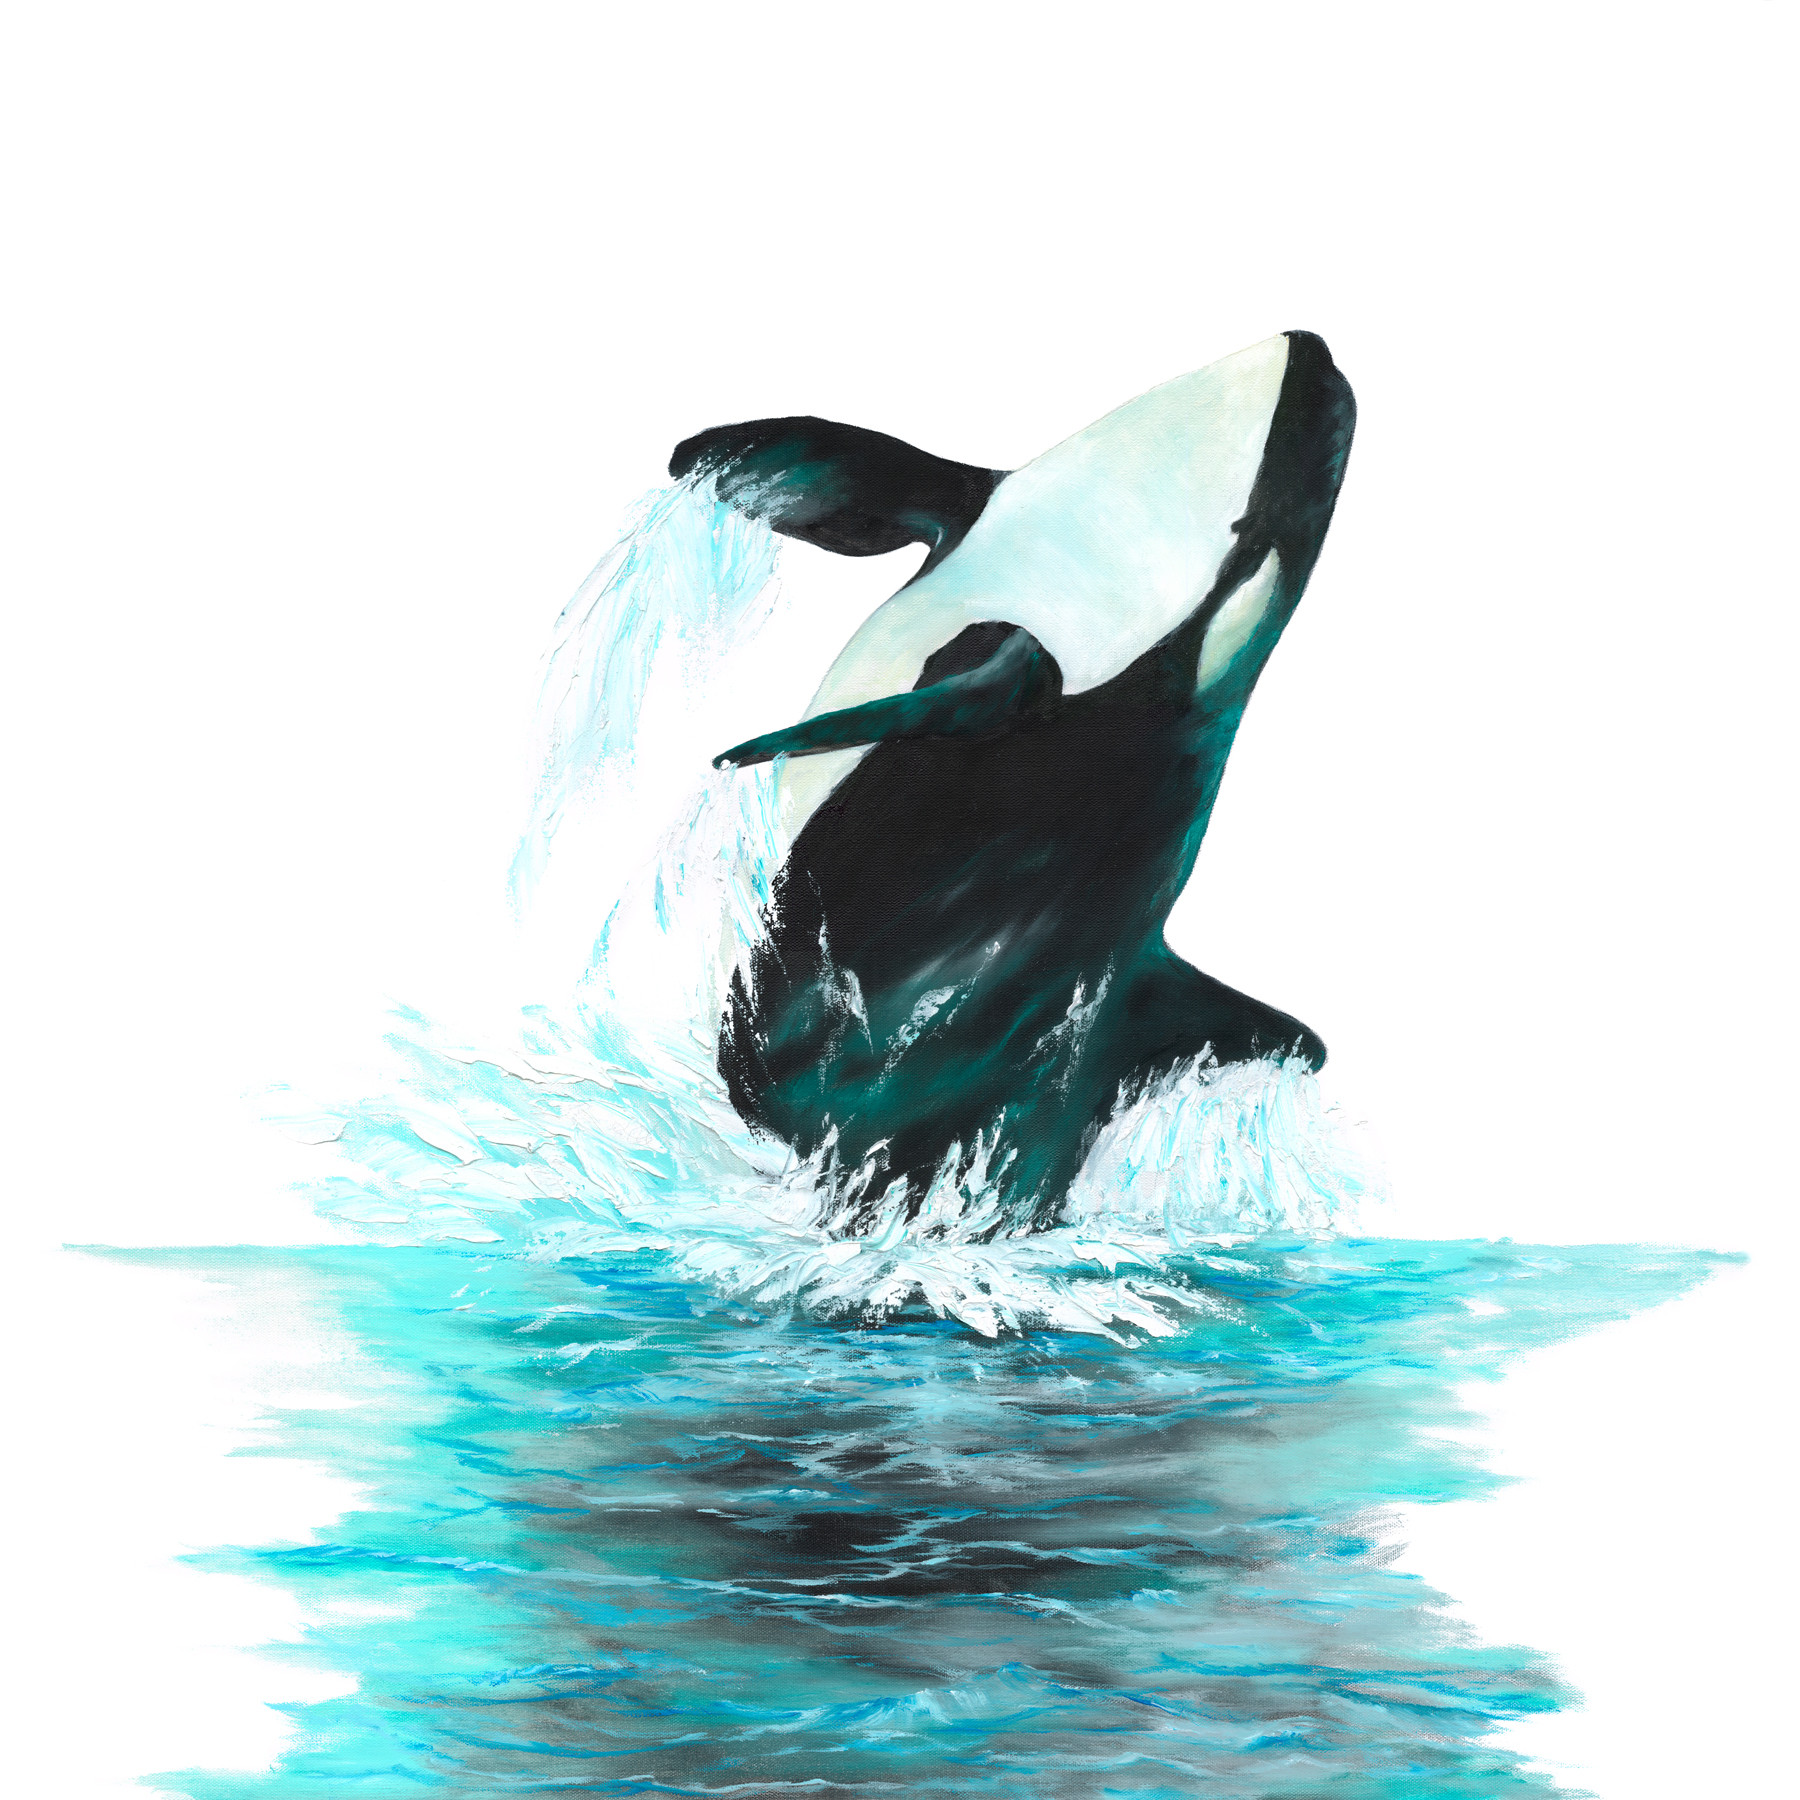 Whale I - 1st in my series of Breaching